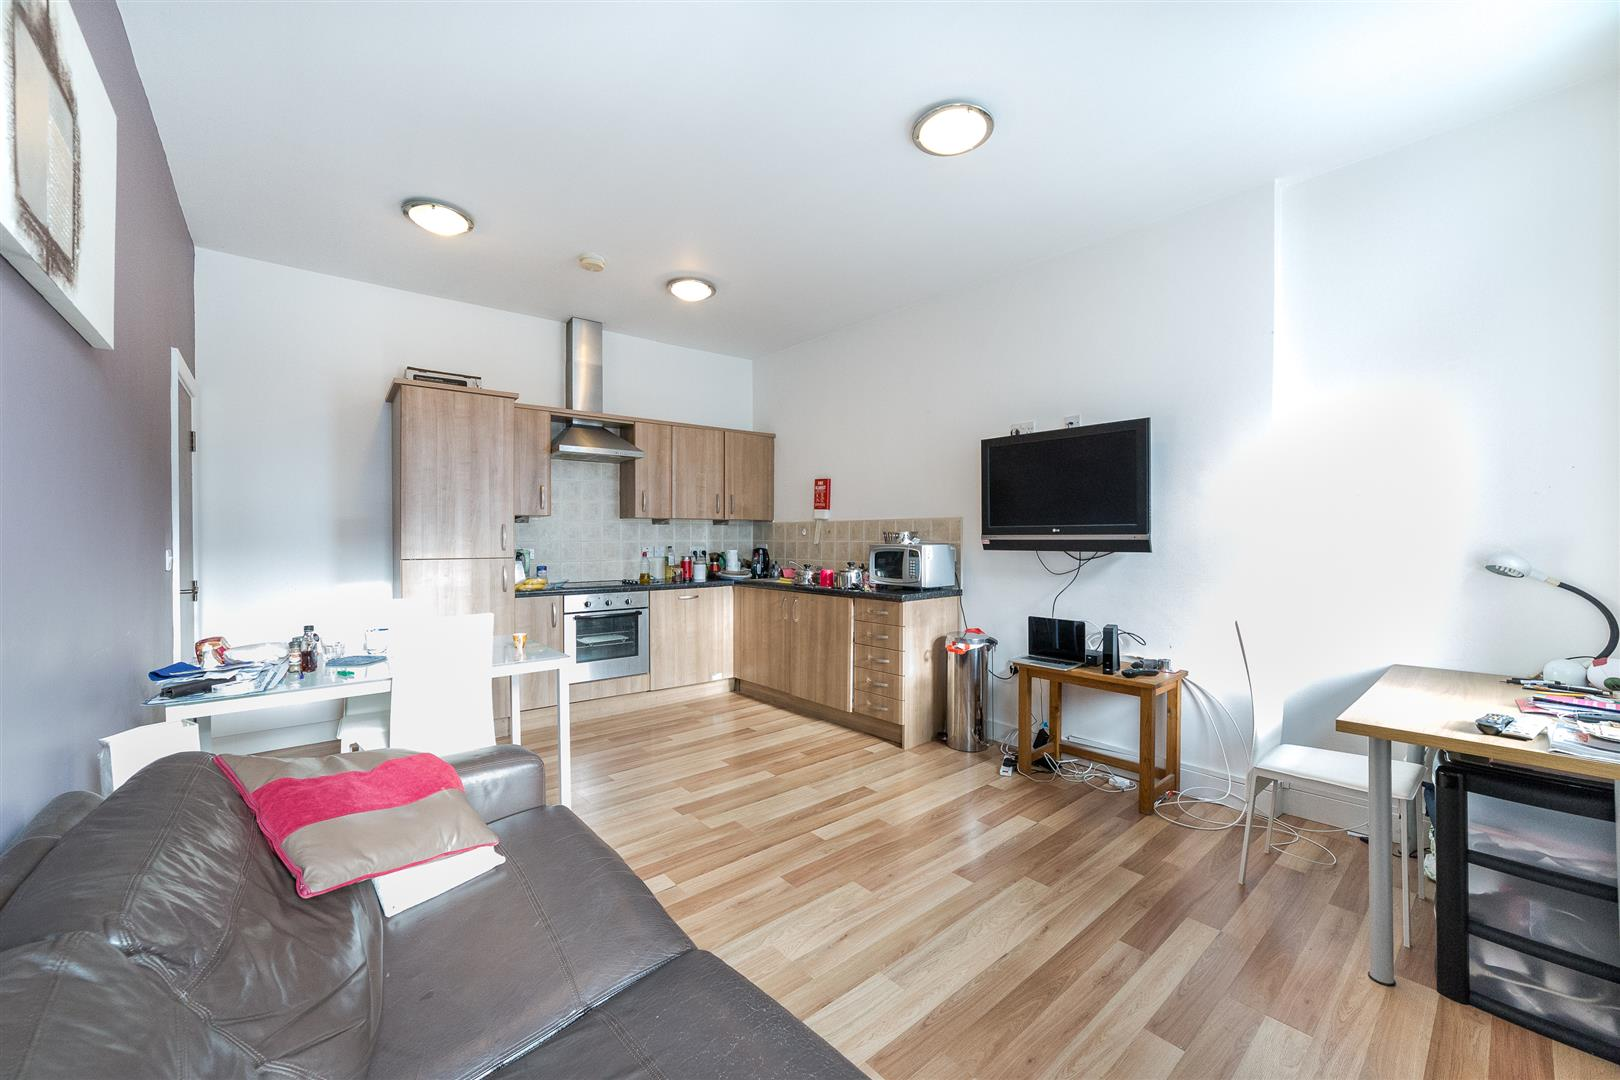 1 bed apartment to rent in Newcastle Upon Tyne, NE1 7DE - Property Image 1